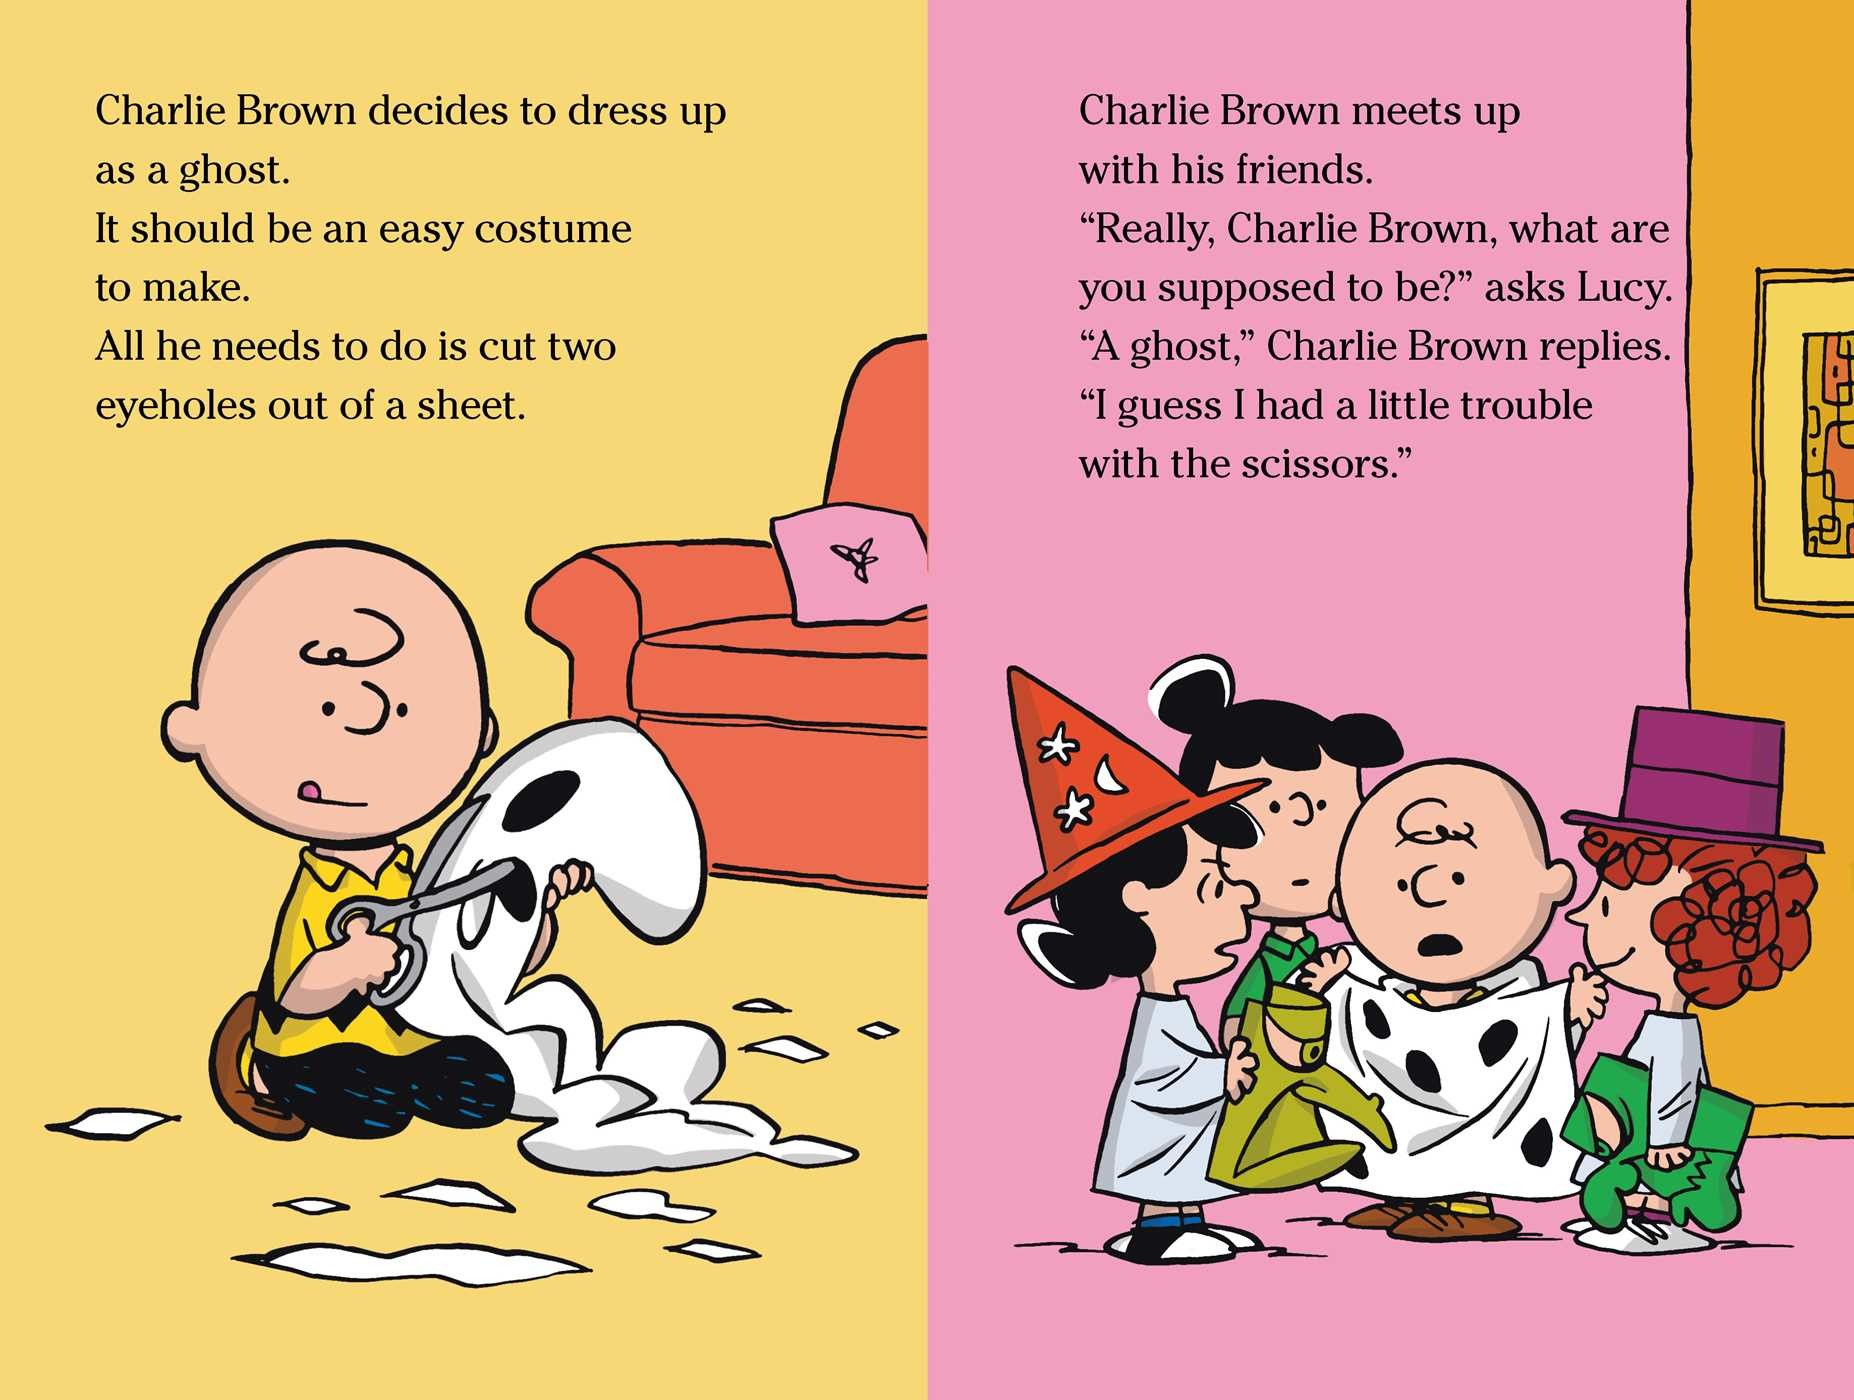 You got a rock charlie brown 9781534405011.in01